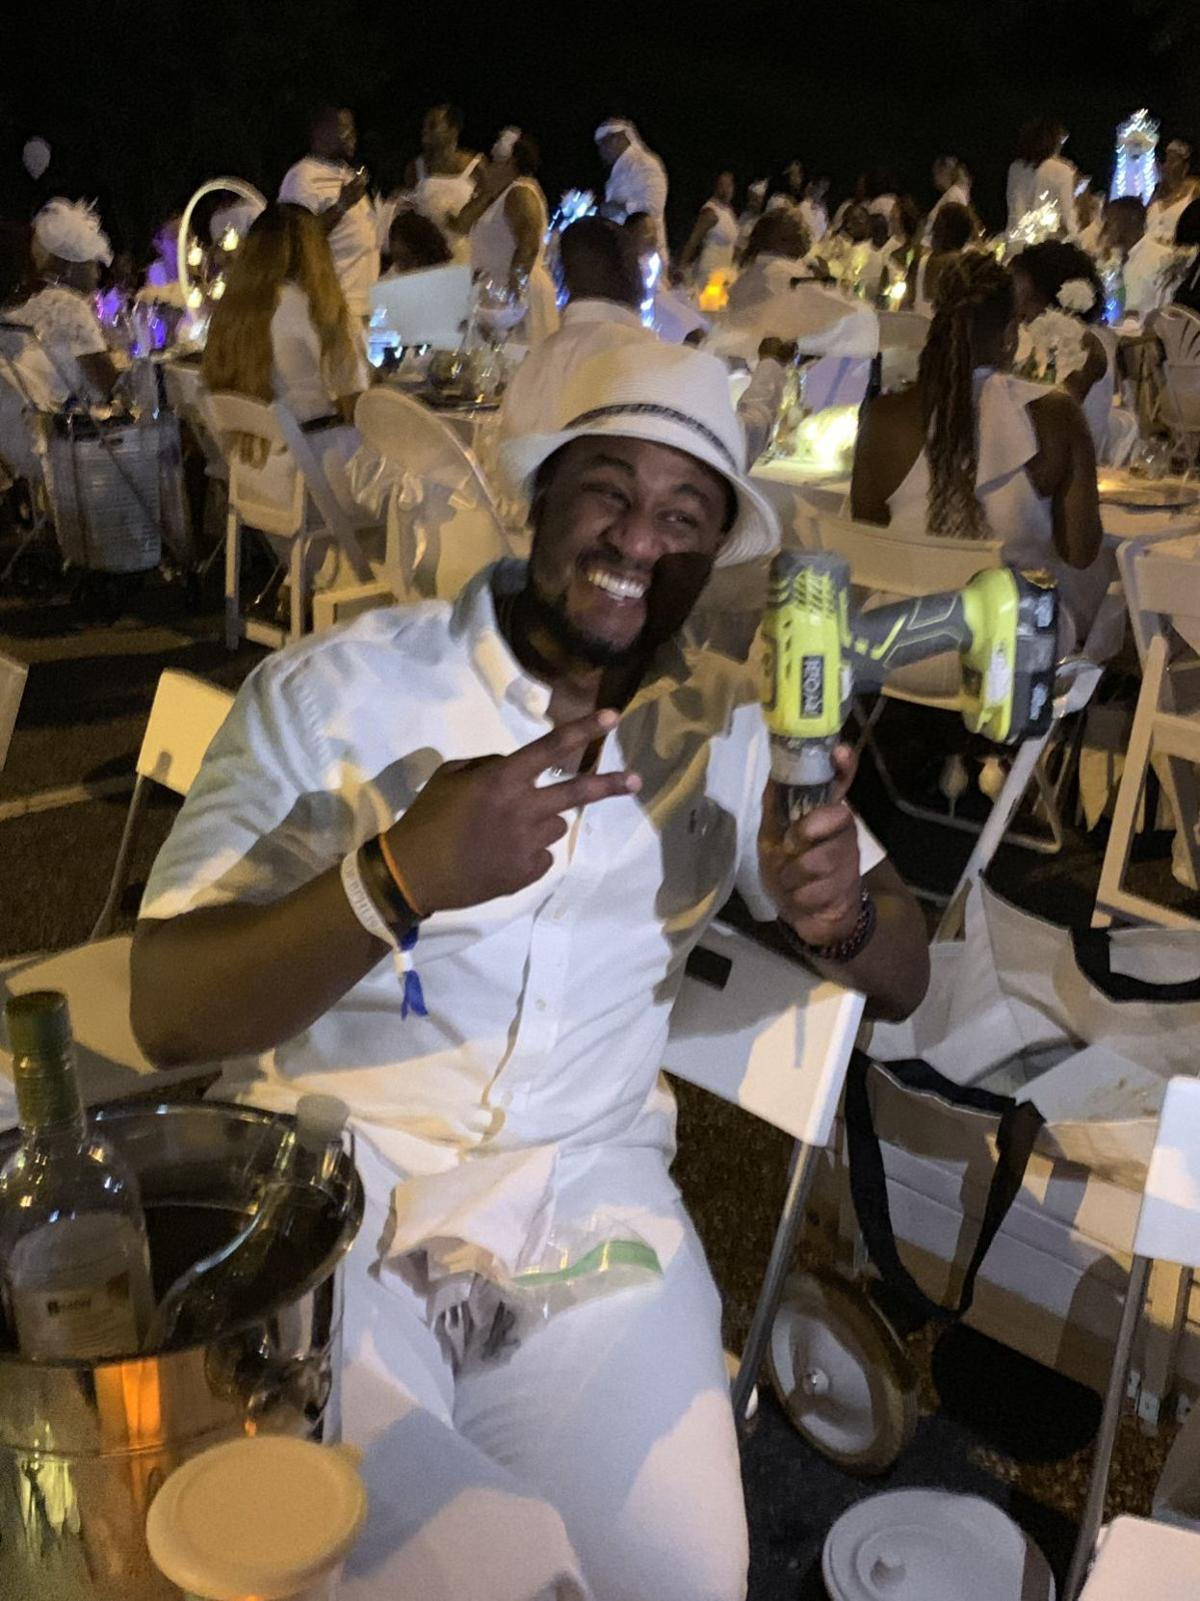 Candles, pearls and power tools ... the beauty of Dîner en Blanc